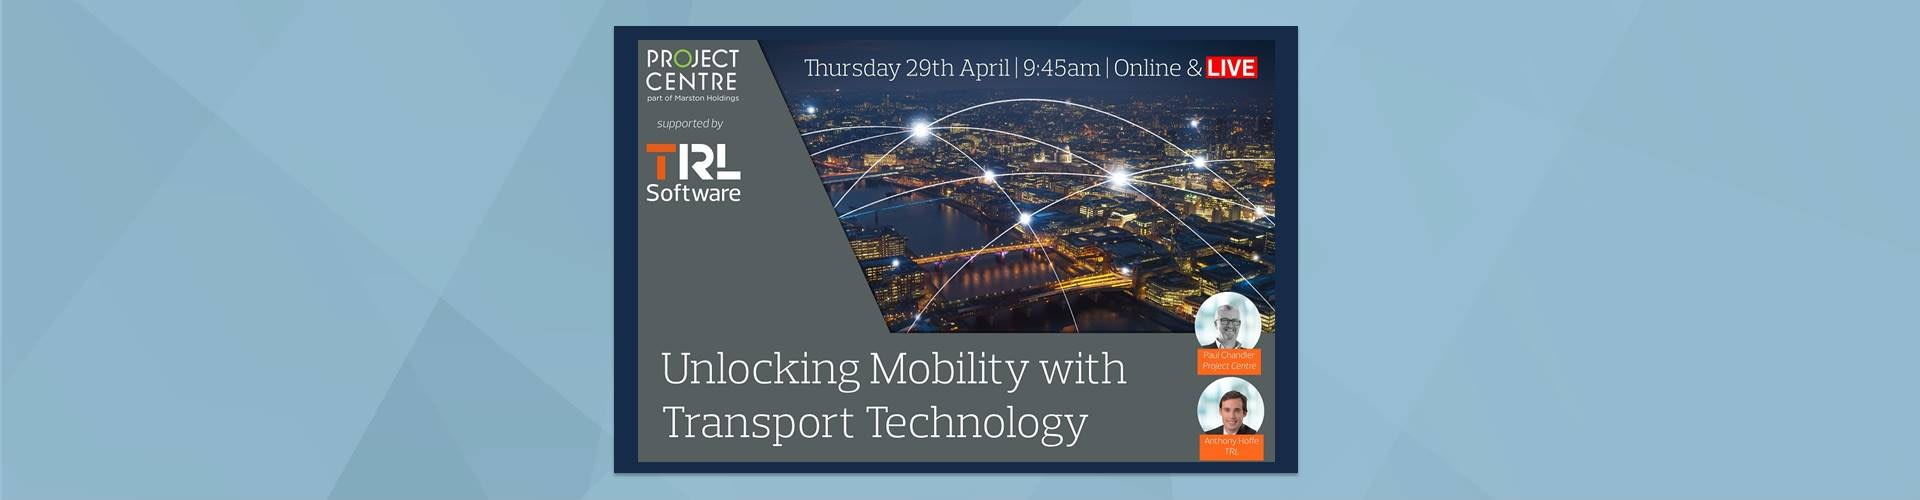 Project Centre and TRL's 'Unlocking Mobility with Transport Technology' Webinar